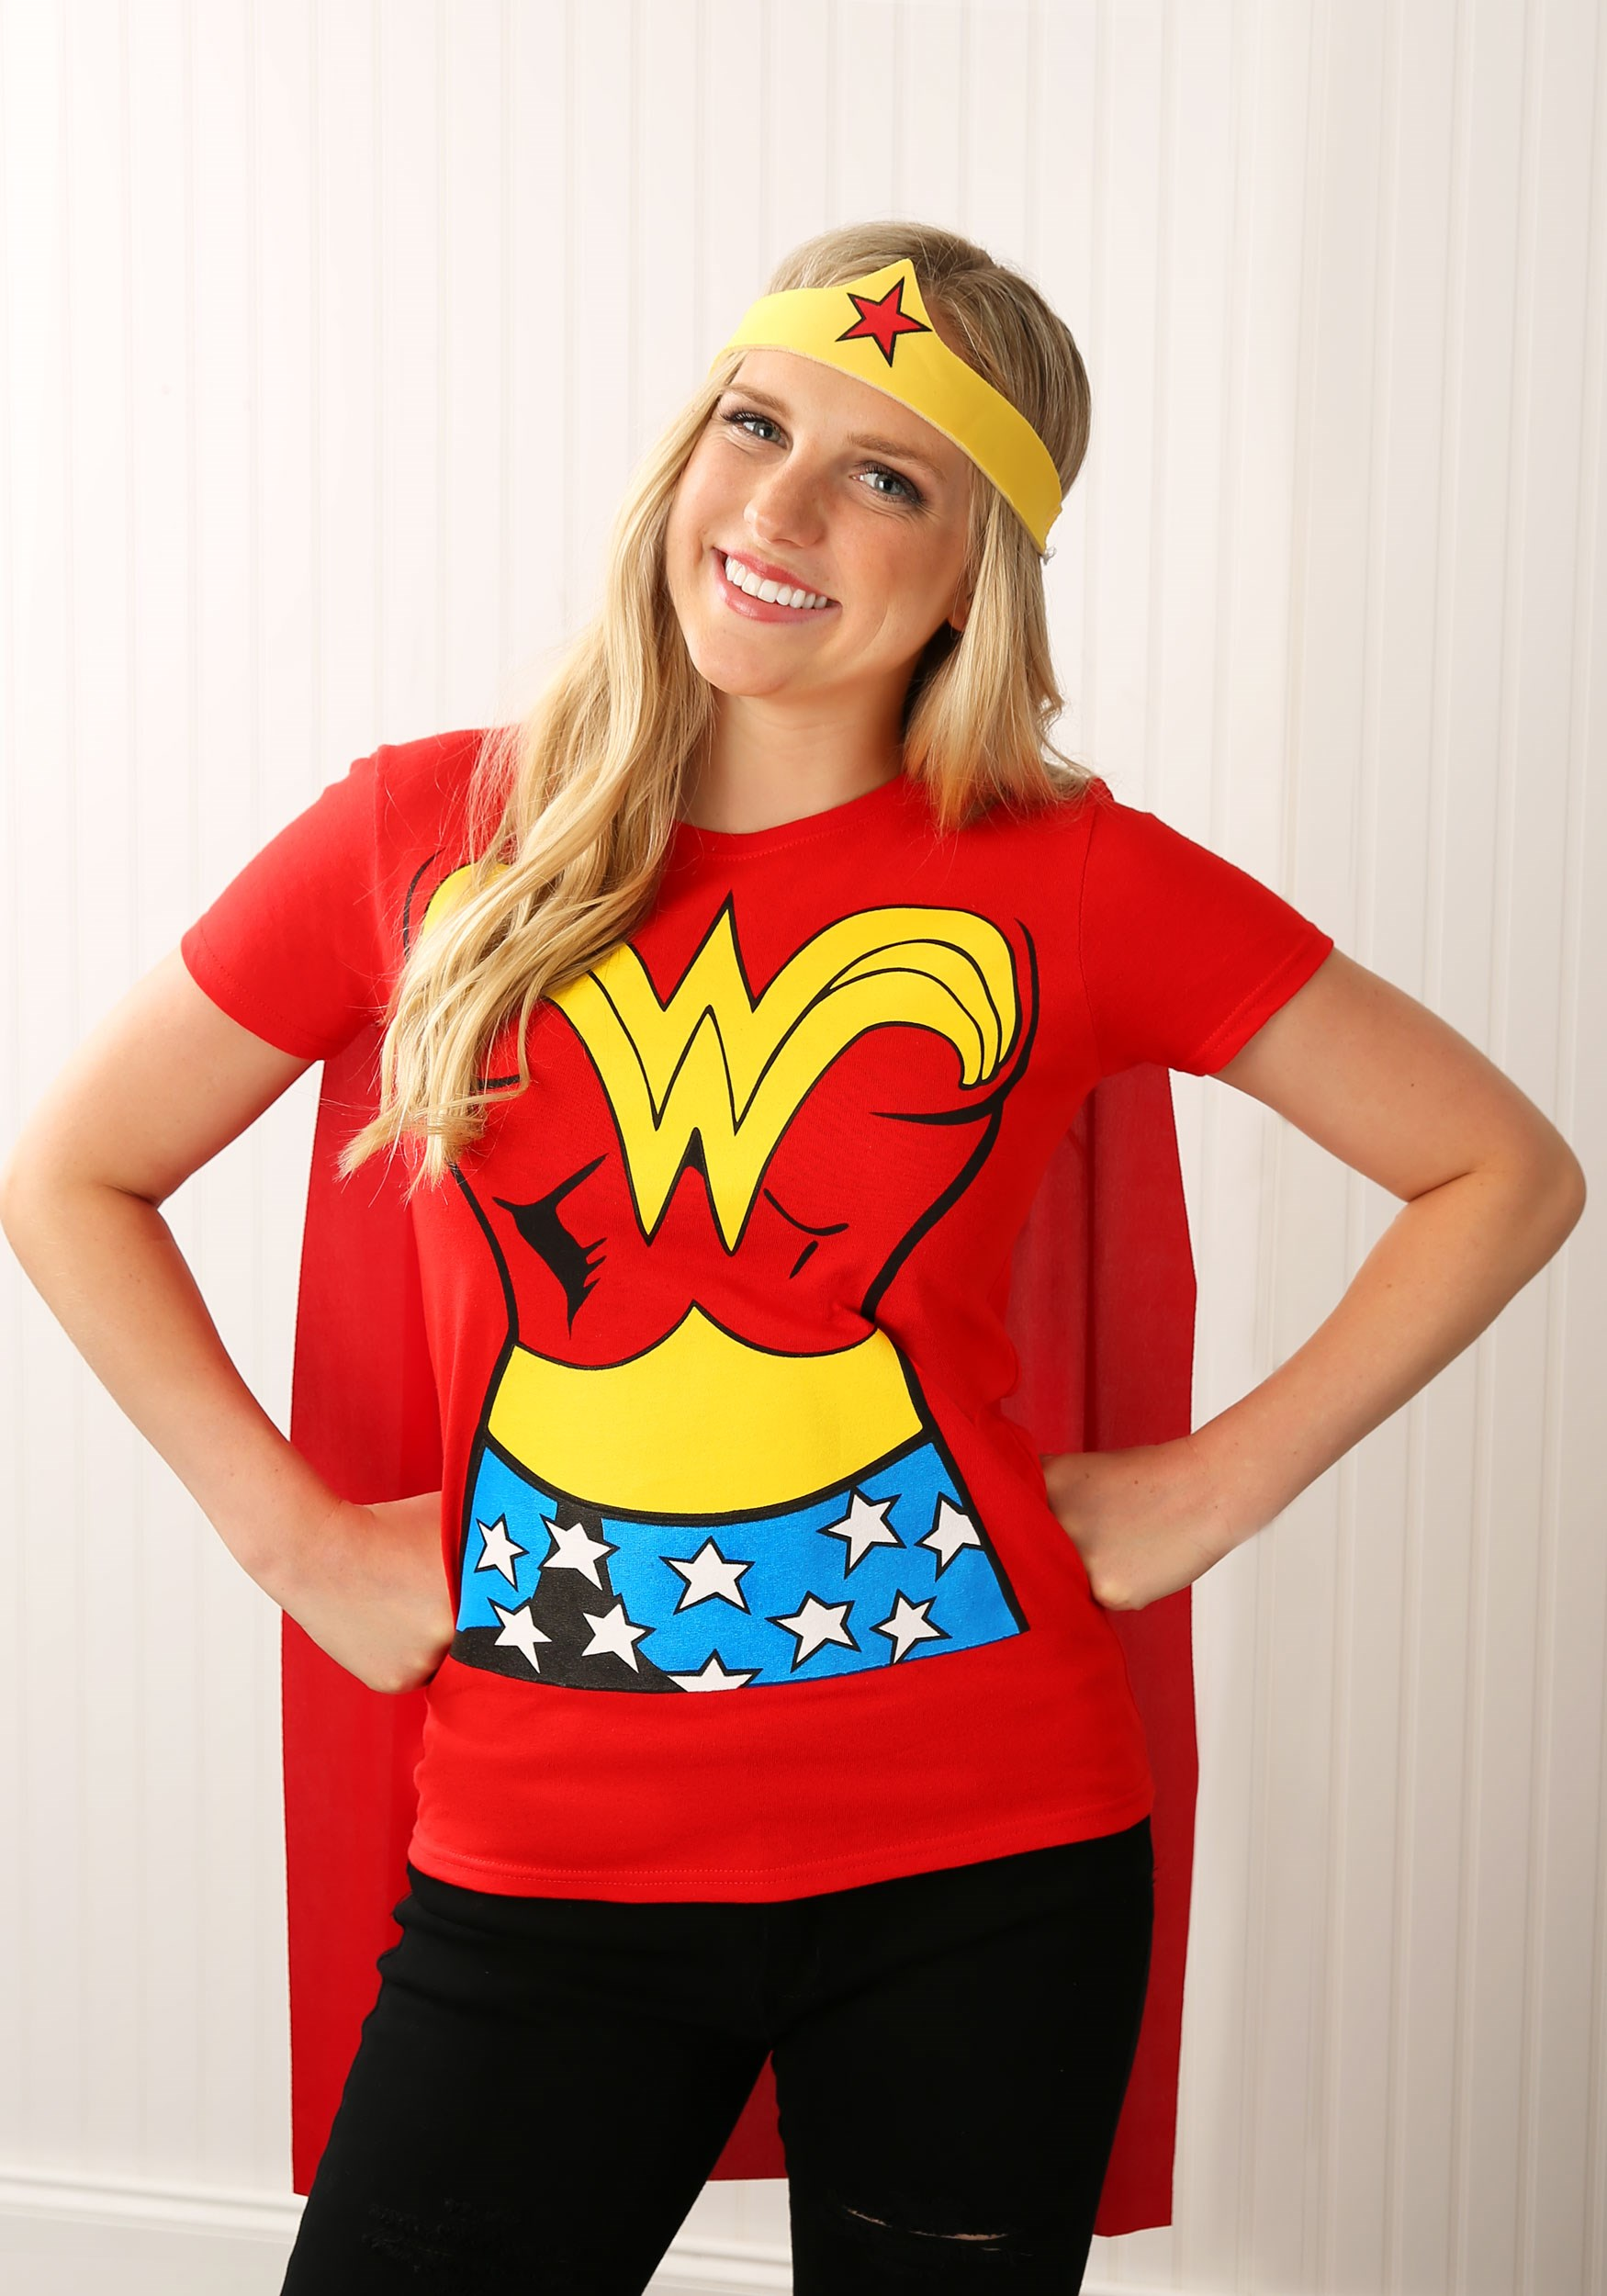 This Wonder Woman costume for adults includes a t-shirt, headband, and cape.